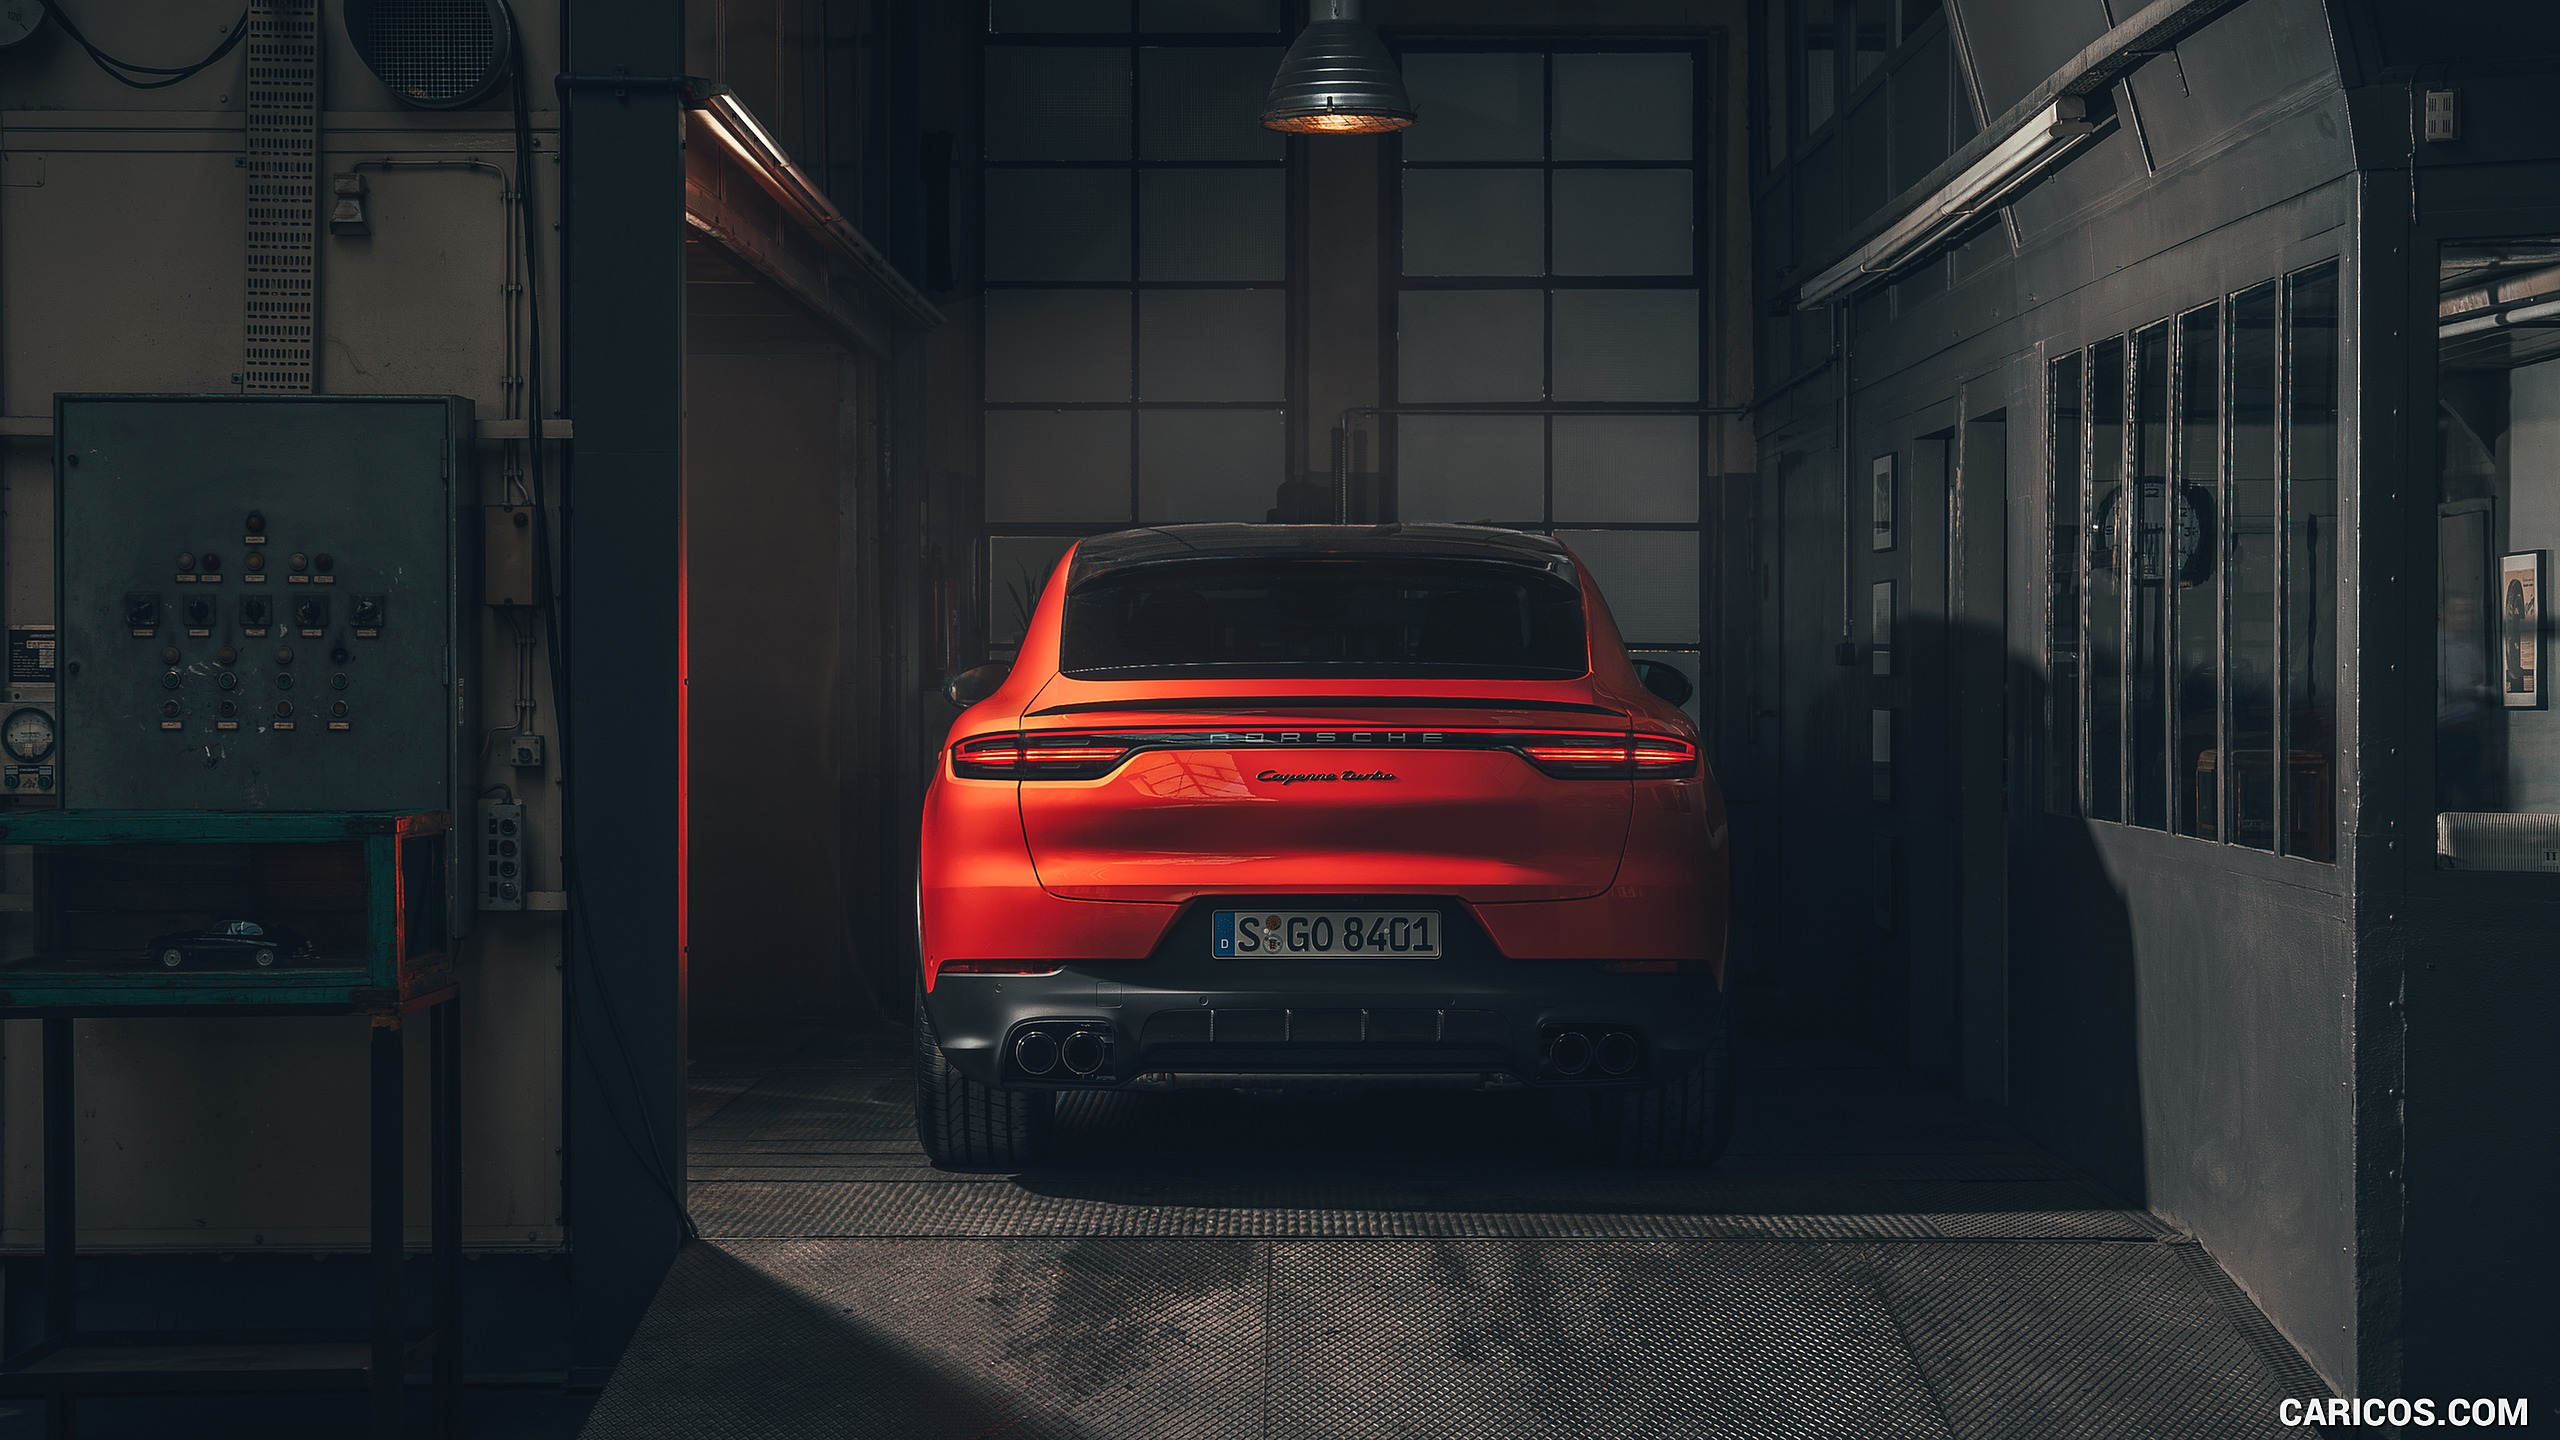 2020 Porsche Cayenne Coupe   Rear HD Wallpaper 24 2560x1440